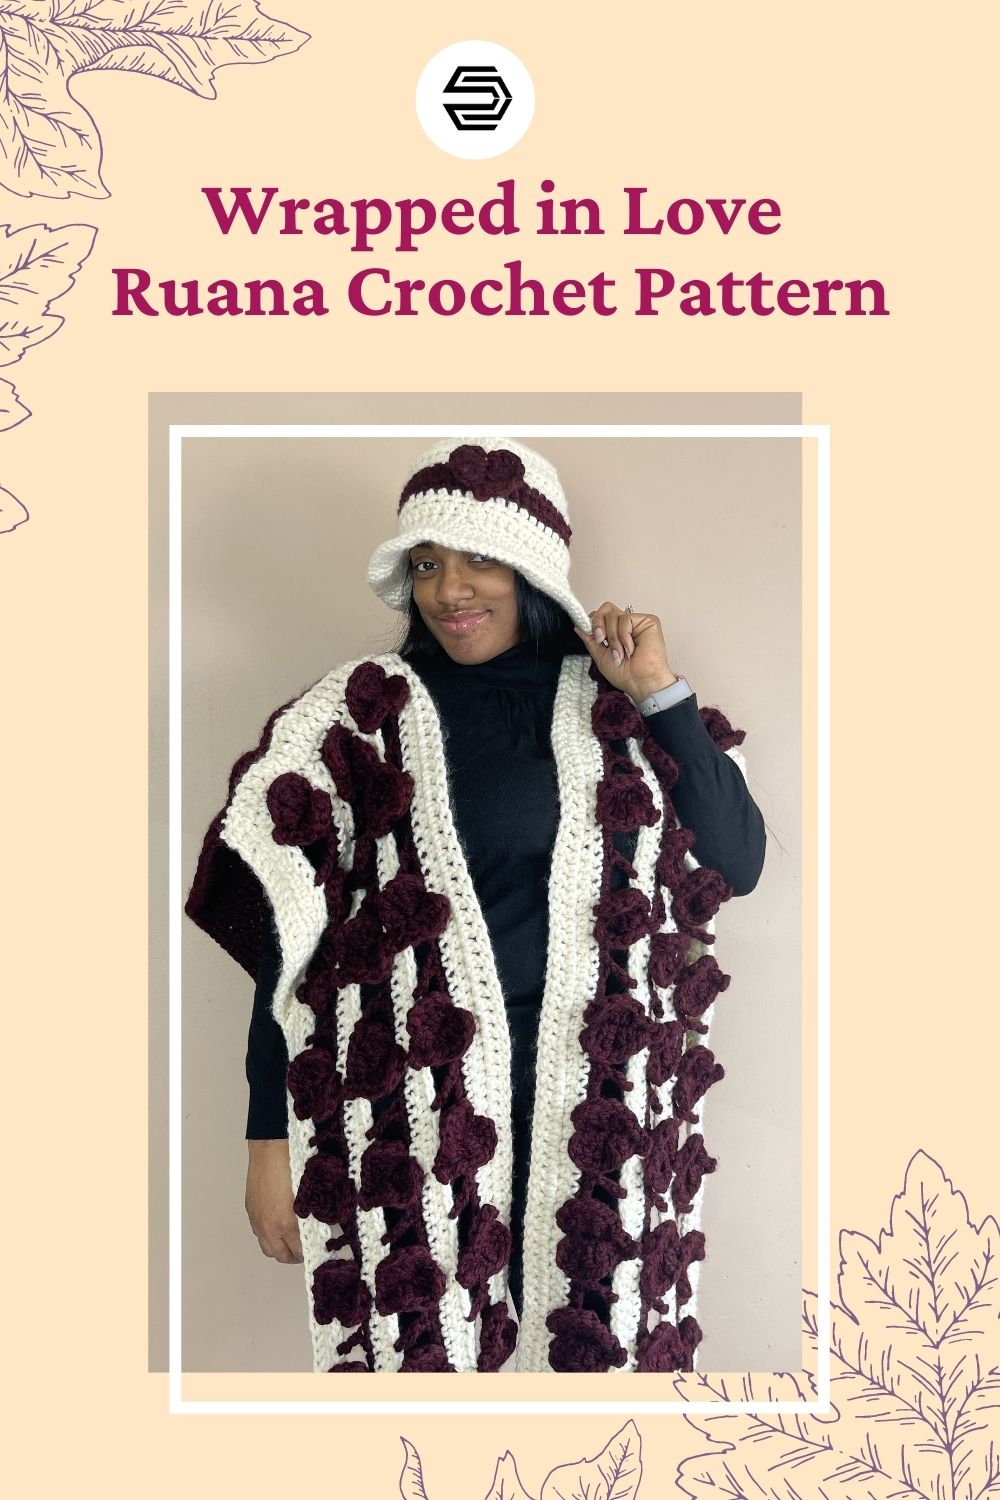 Wrap yourself or your bestie with love in every stitch of the Wrapped in Love Ruana. Inspired by Valentine's Day, but can add a touch of elegance to any outfit on a chilly day. This crochet ruana patterns features a large heart for the back, and rows of floating hearts on the front. With the extra length at the front, easily wrap for added warmth.